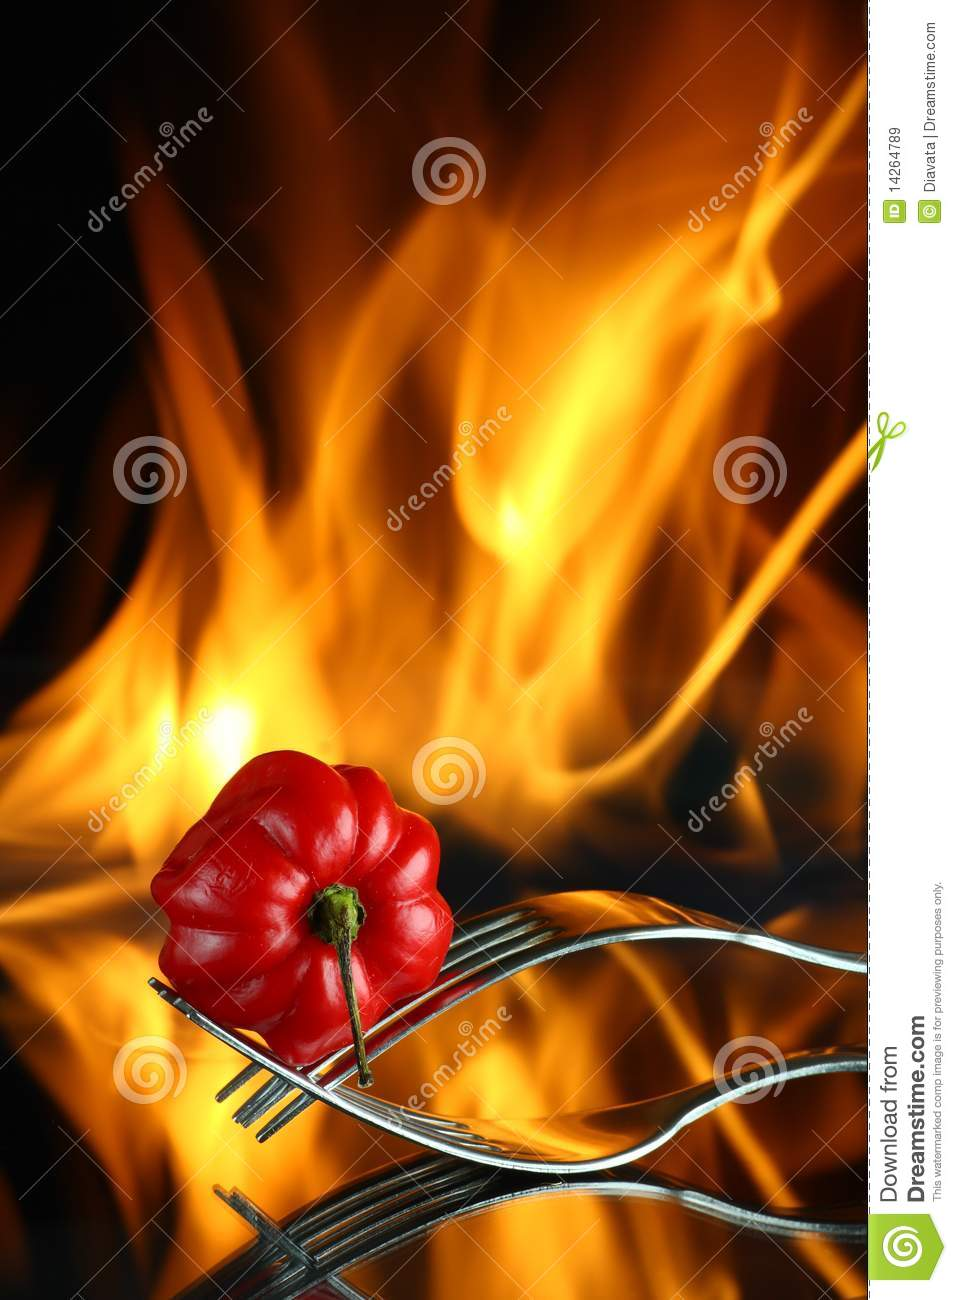 Red chili pepper with fire